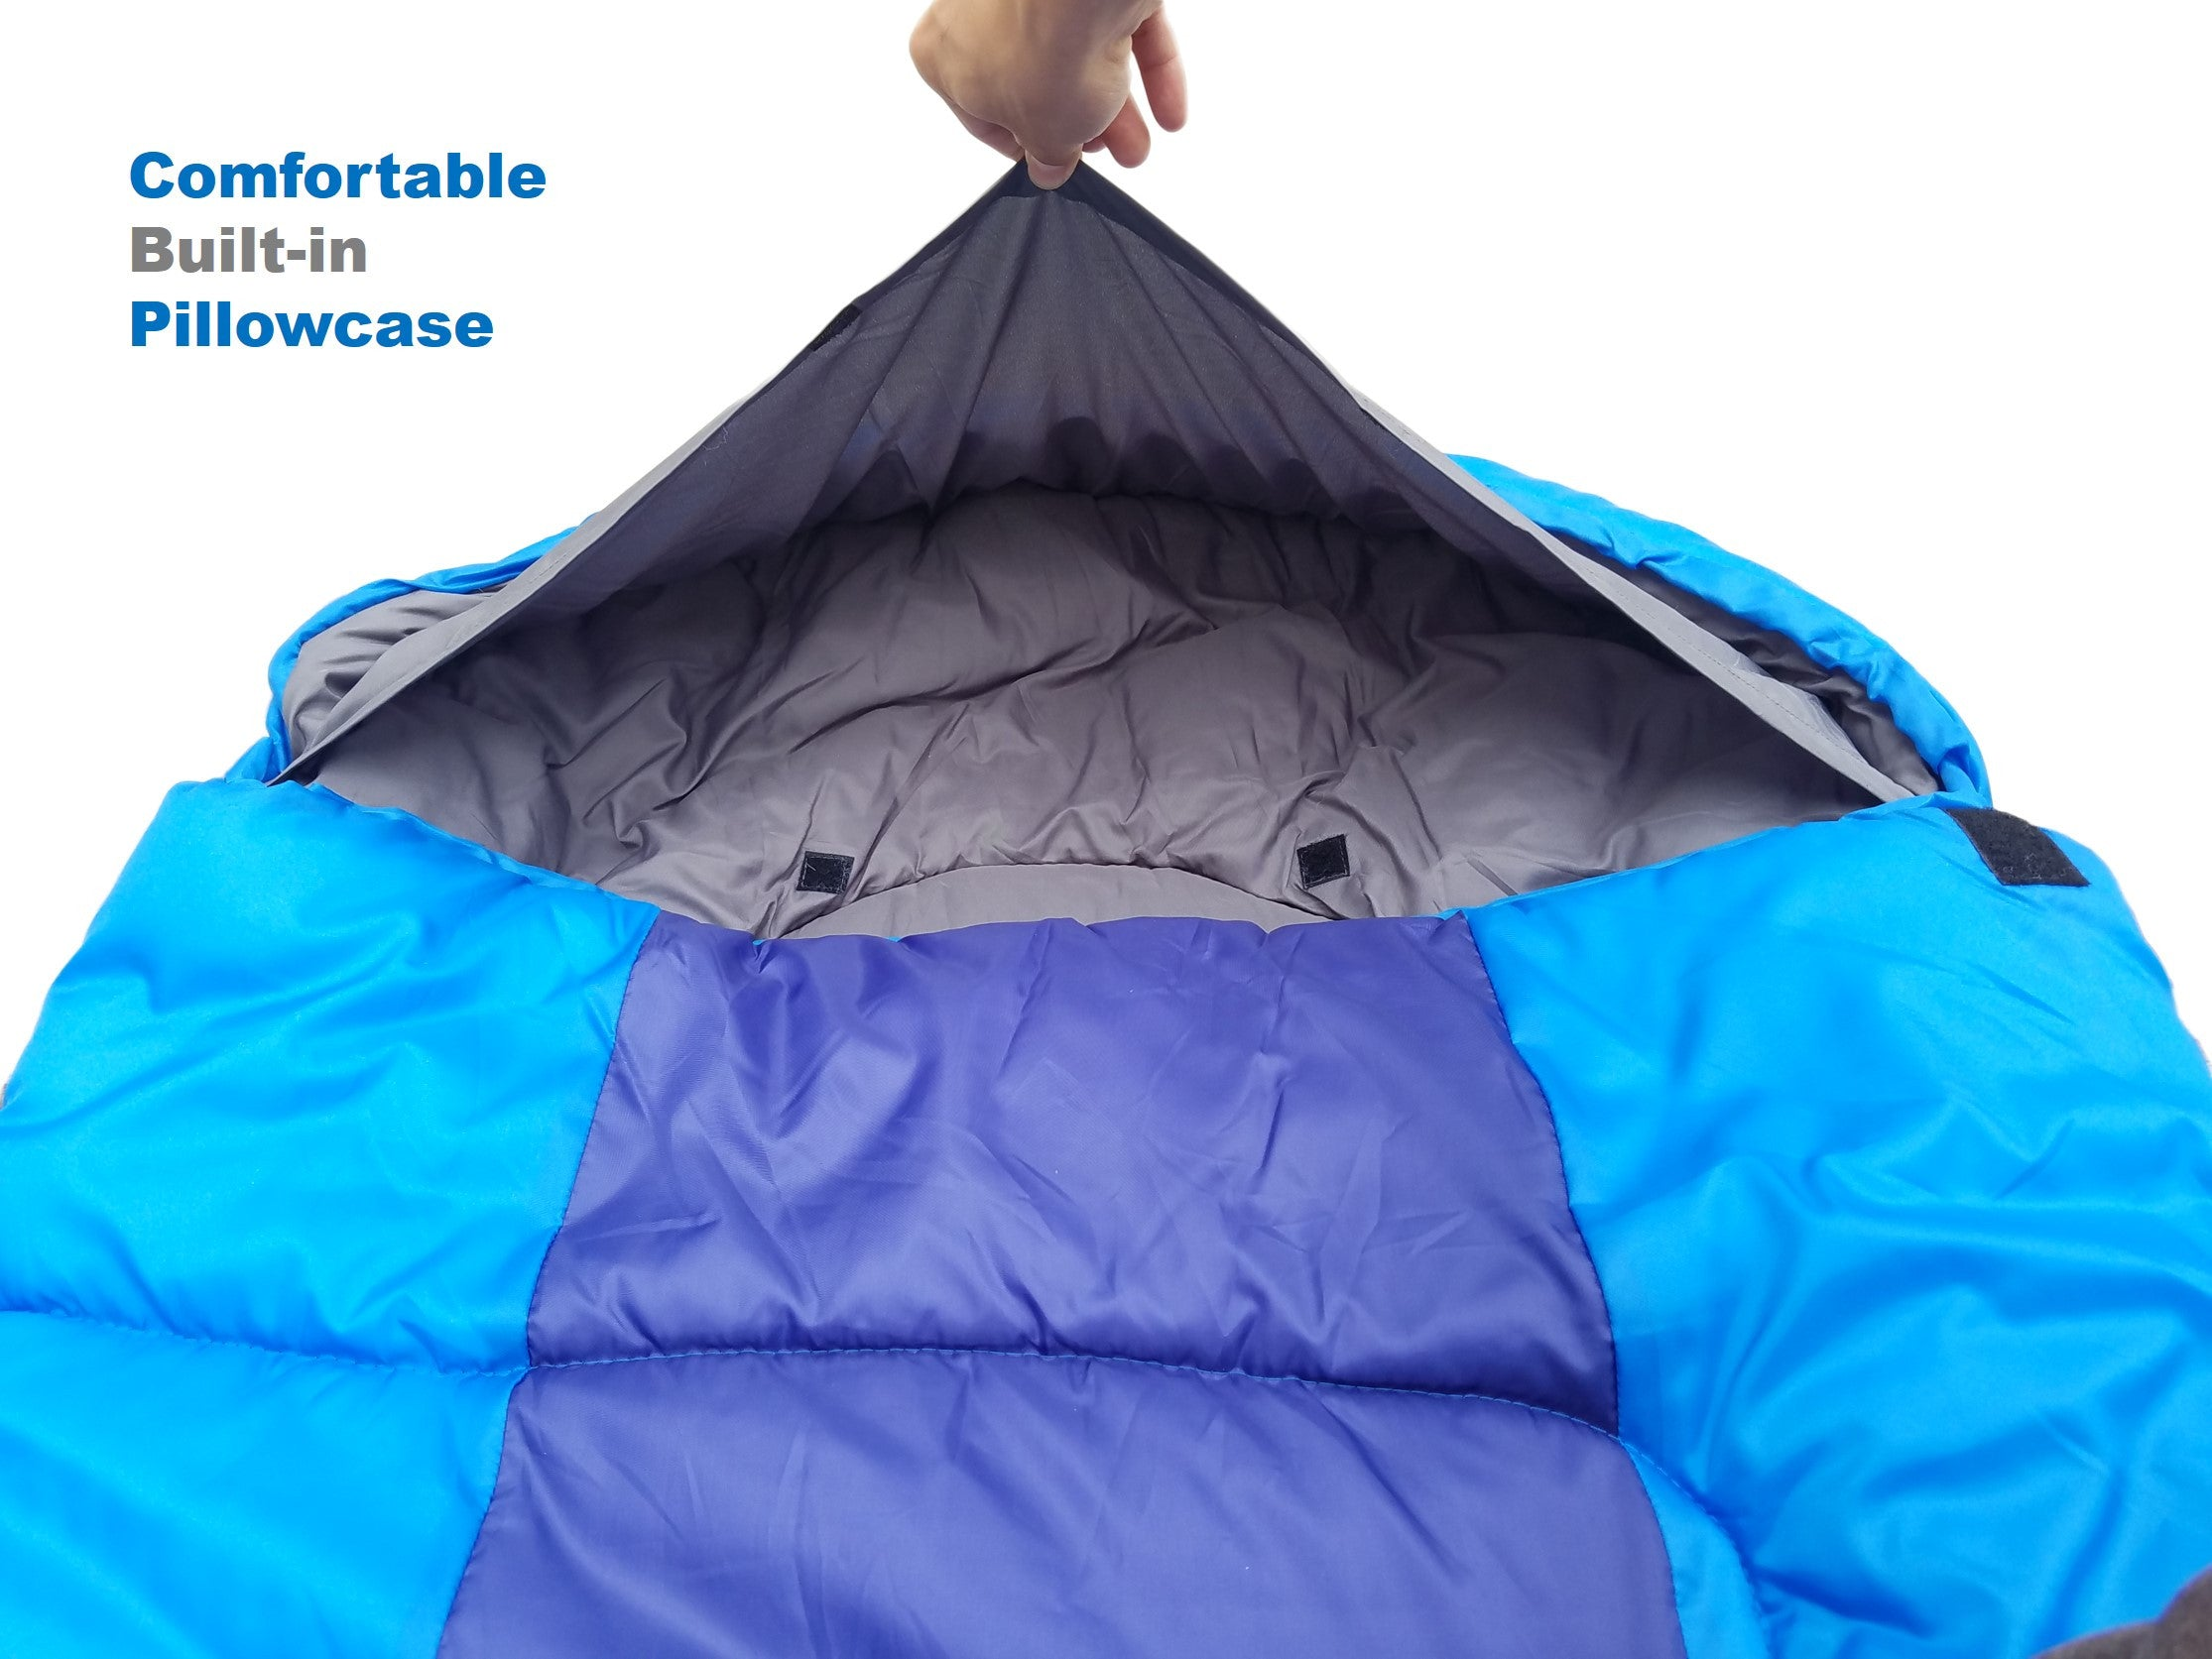 XL Sleeping Bag - OutdoorsmanLab